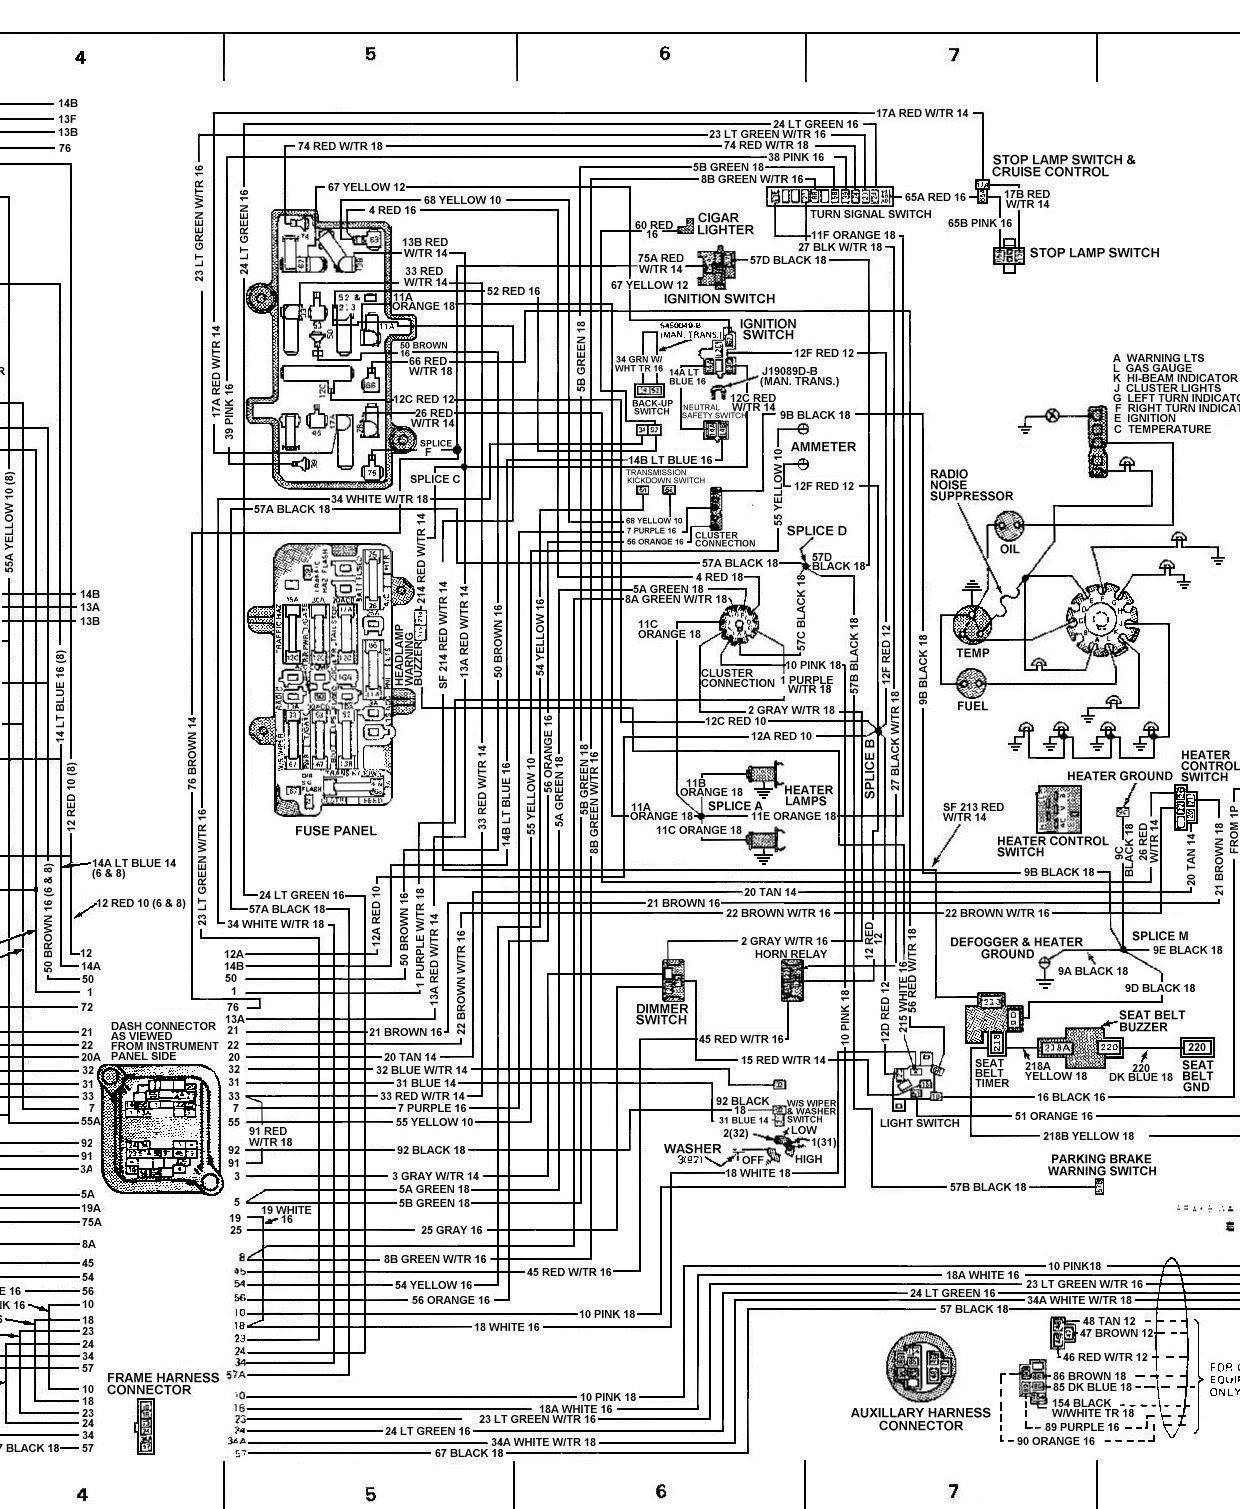 2004 Saab 9 3 Audio Wiring Diagram Badlands Winch Remote Chevy Diagrams / Schematics | Avalanche 1500 Pinterest Honda Accord, Sedans And ...